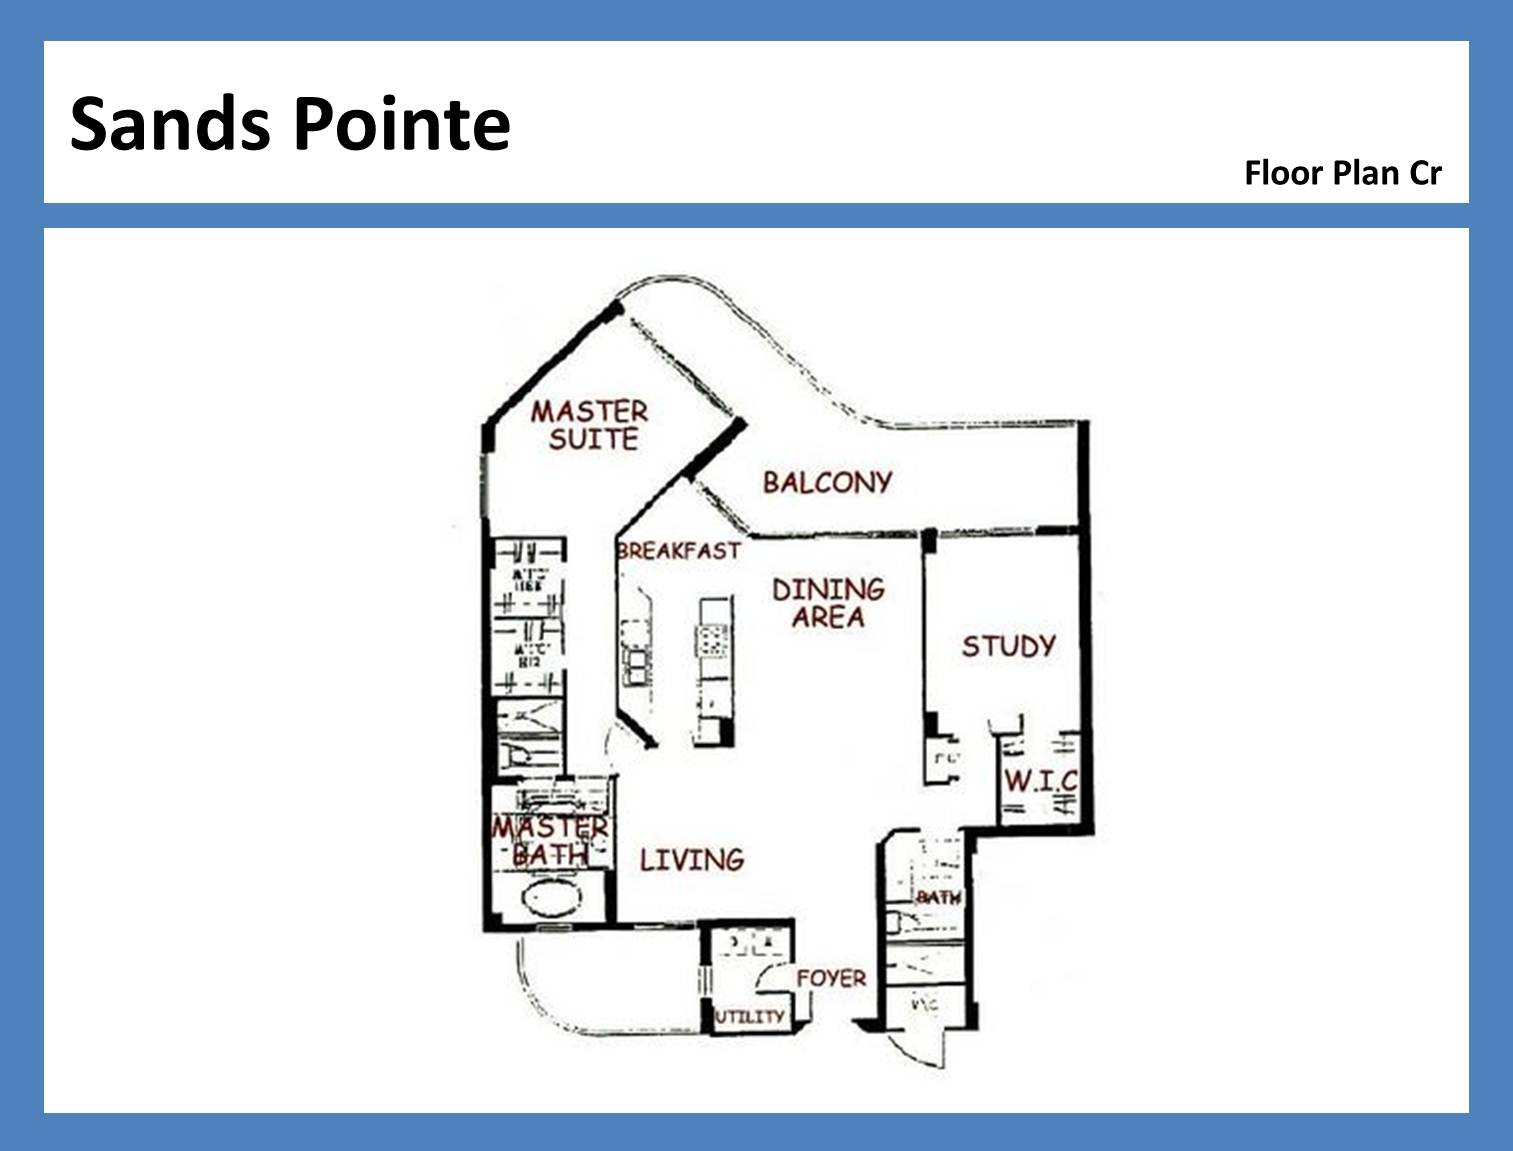 Sands Pointe - Floorplan 5